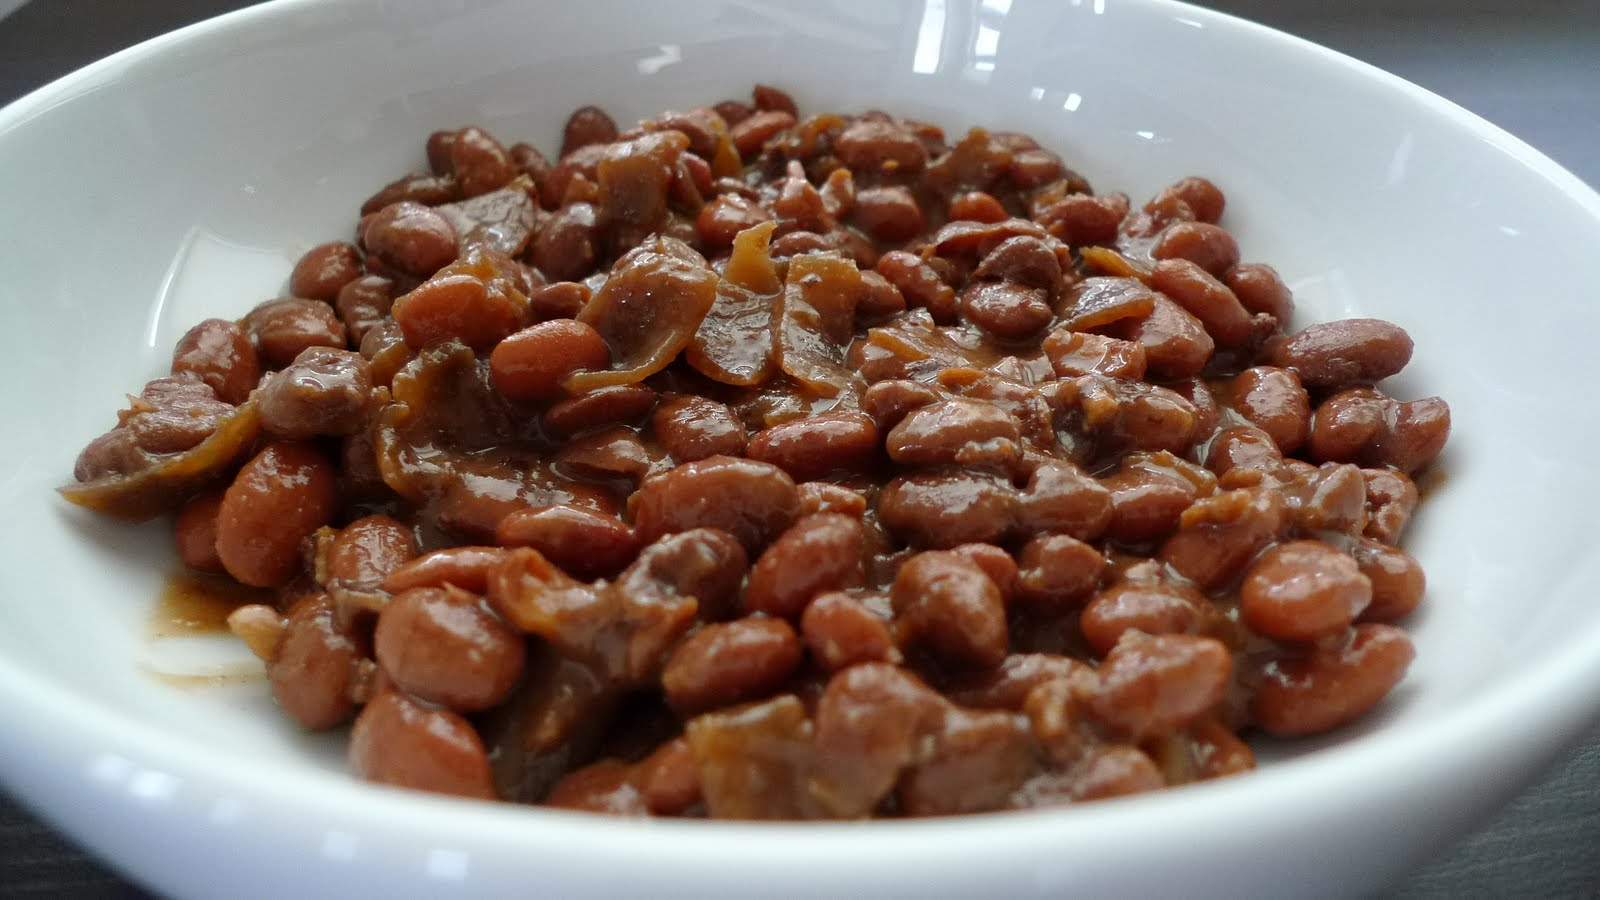 And Boston Baked Beans